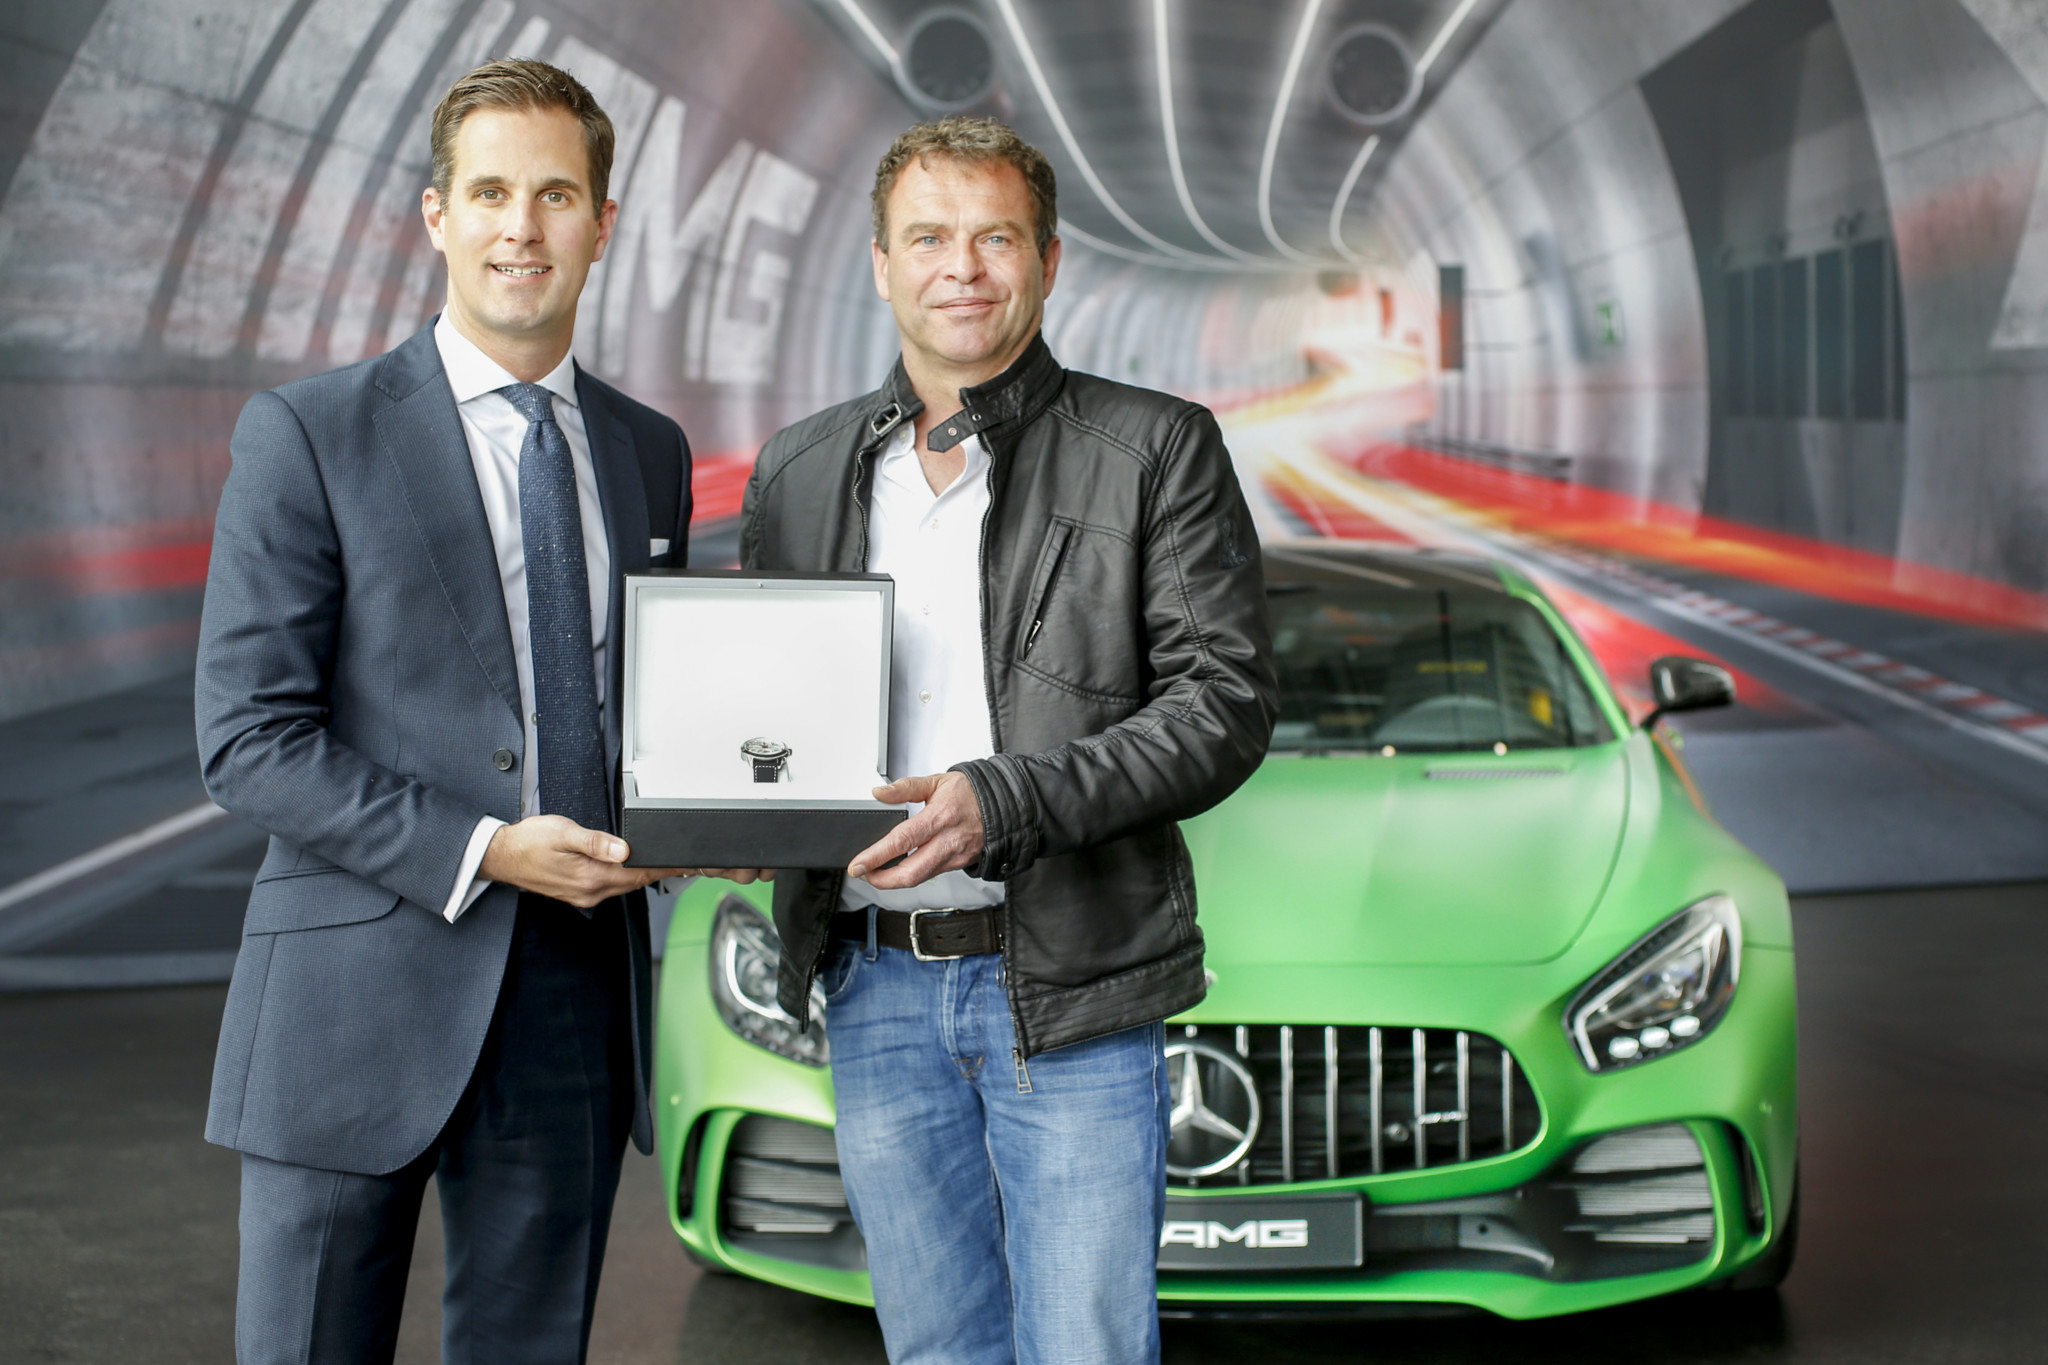 """IWC CEO Christoph Grainger-Herr visits the AMG manufacture in Affalterbach and hands over the Ingenieur Chronograph Sport Edition """"50th Anniversary of Mercedes-AMG"""" to AMG CEO Tobias Moers."""